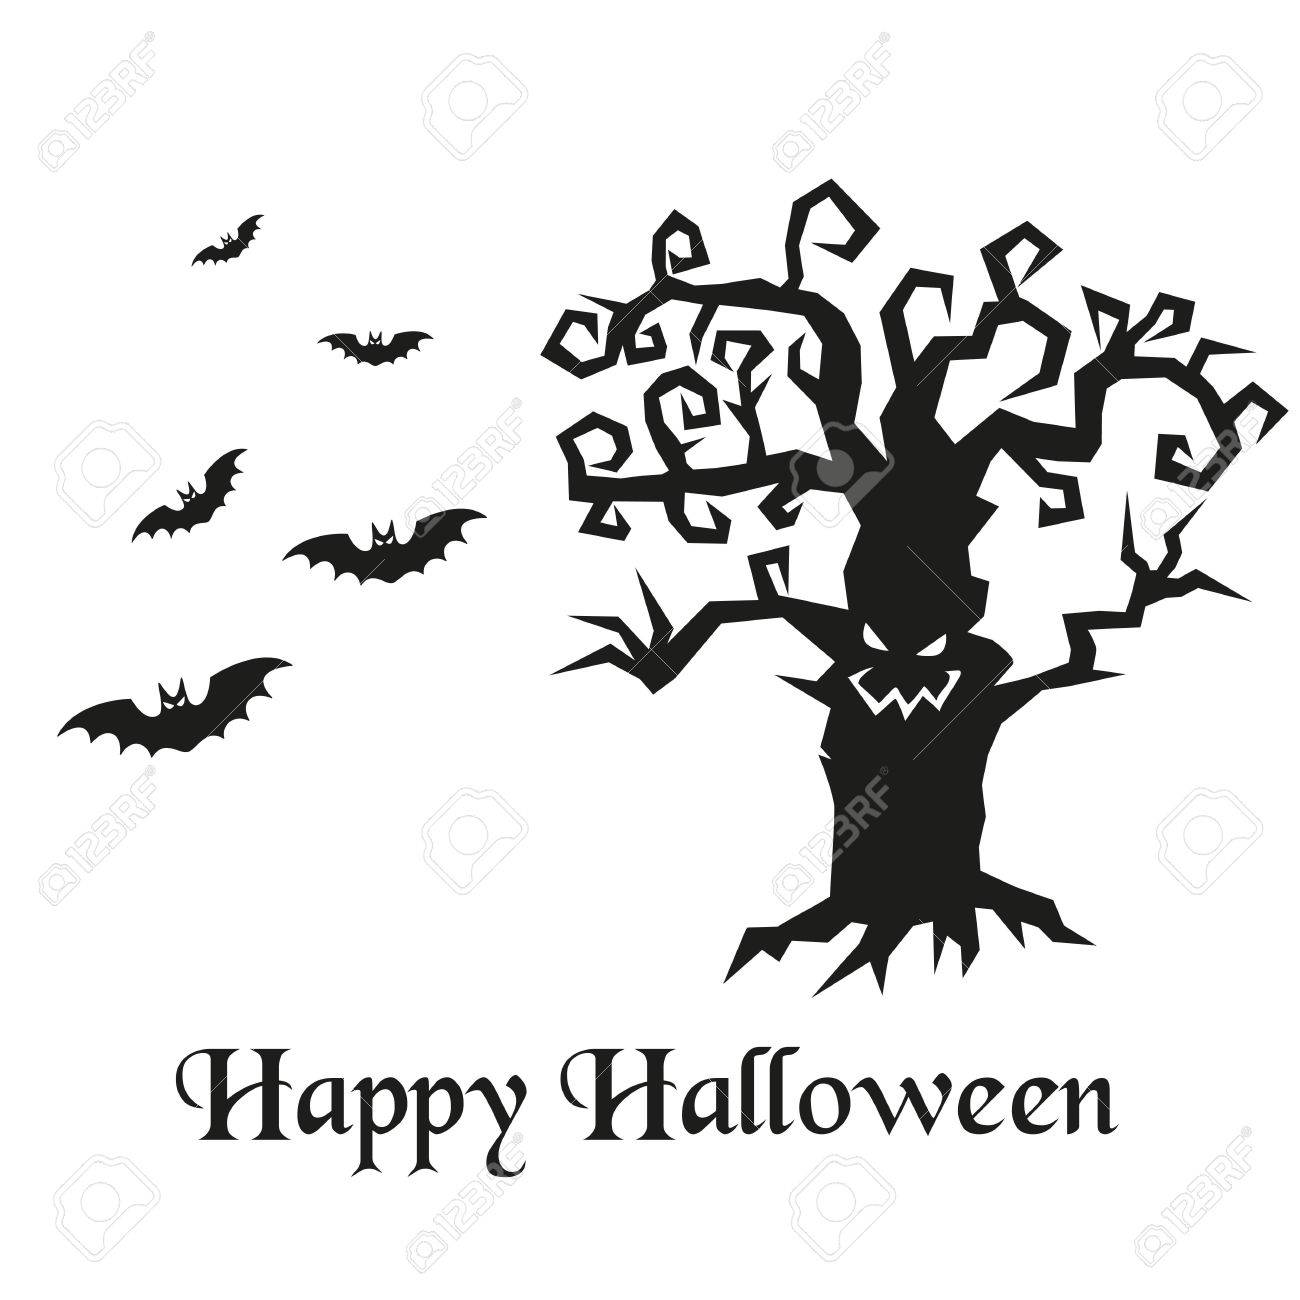 hight resolution of spooky silhouette of halloween tree and bats vector illustration stock vector 69275163